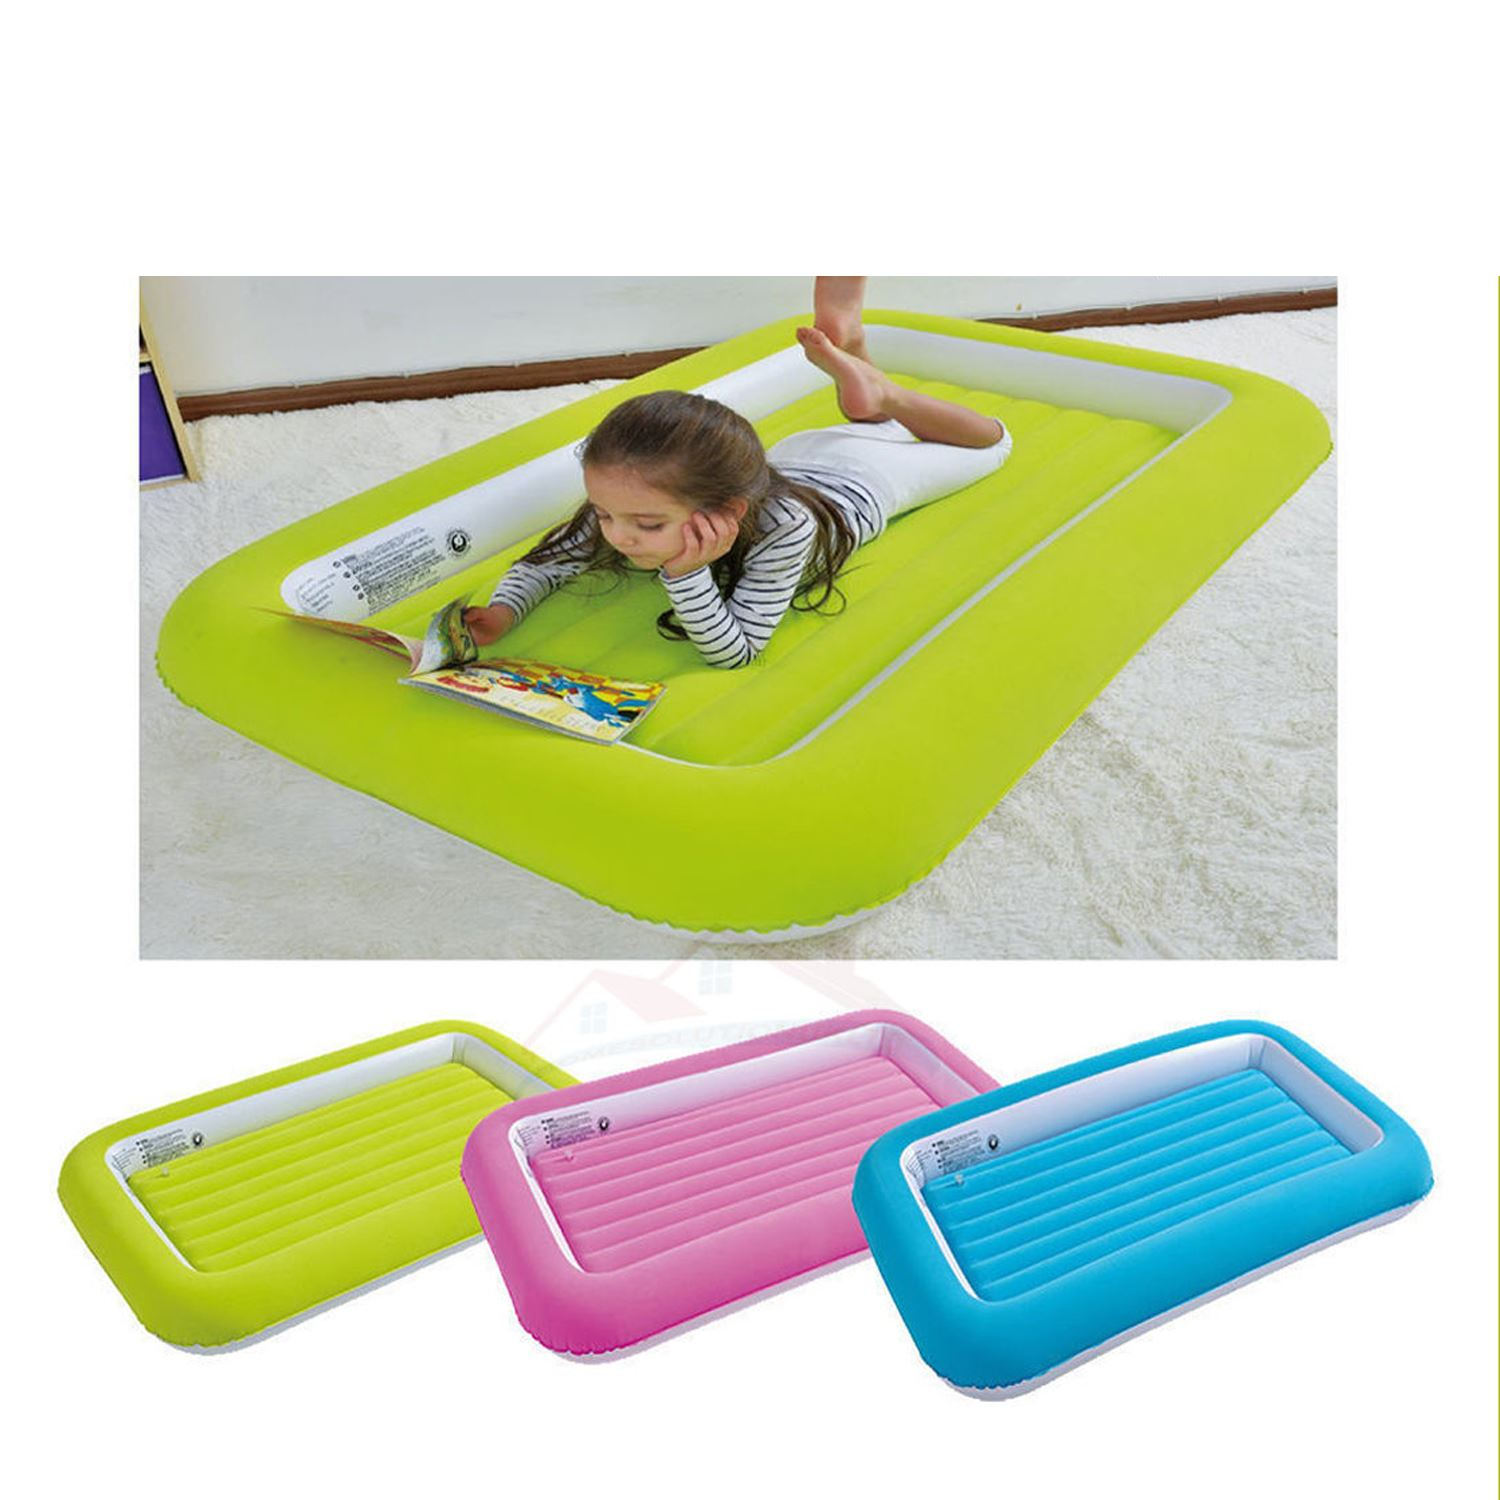 Flocked Kids Junior Children Safety Inflatable Air Bed Mattress Camping Guests